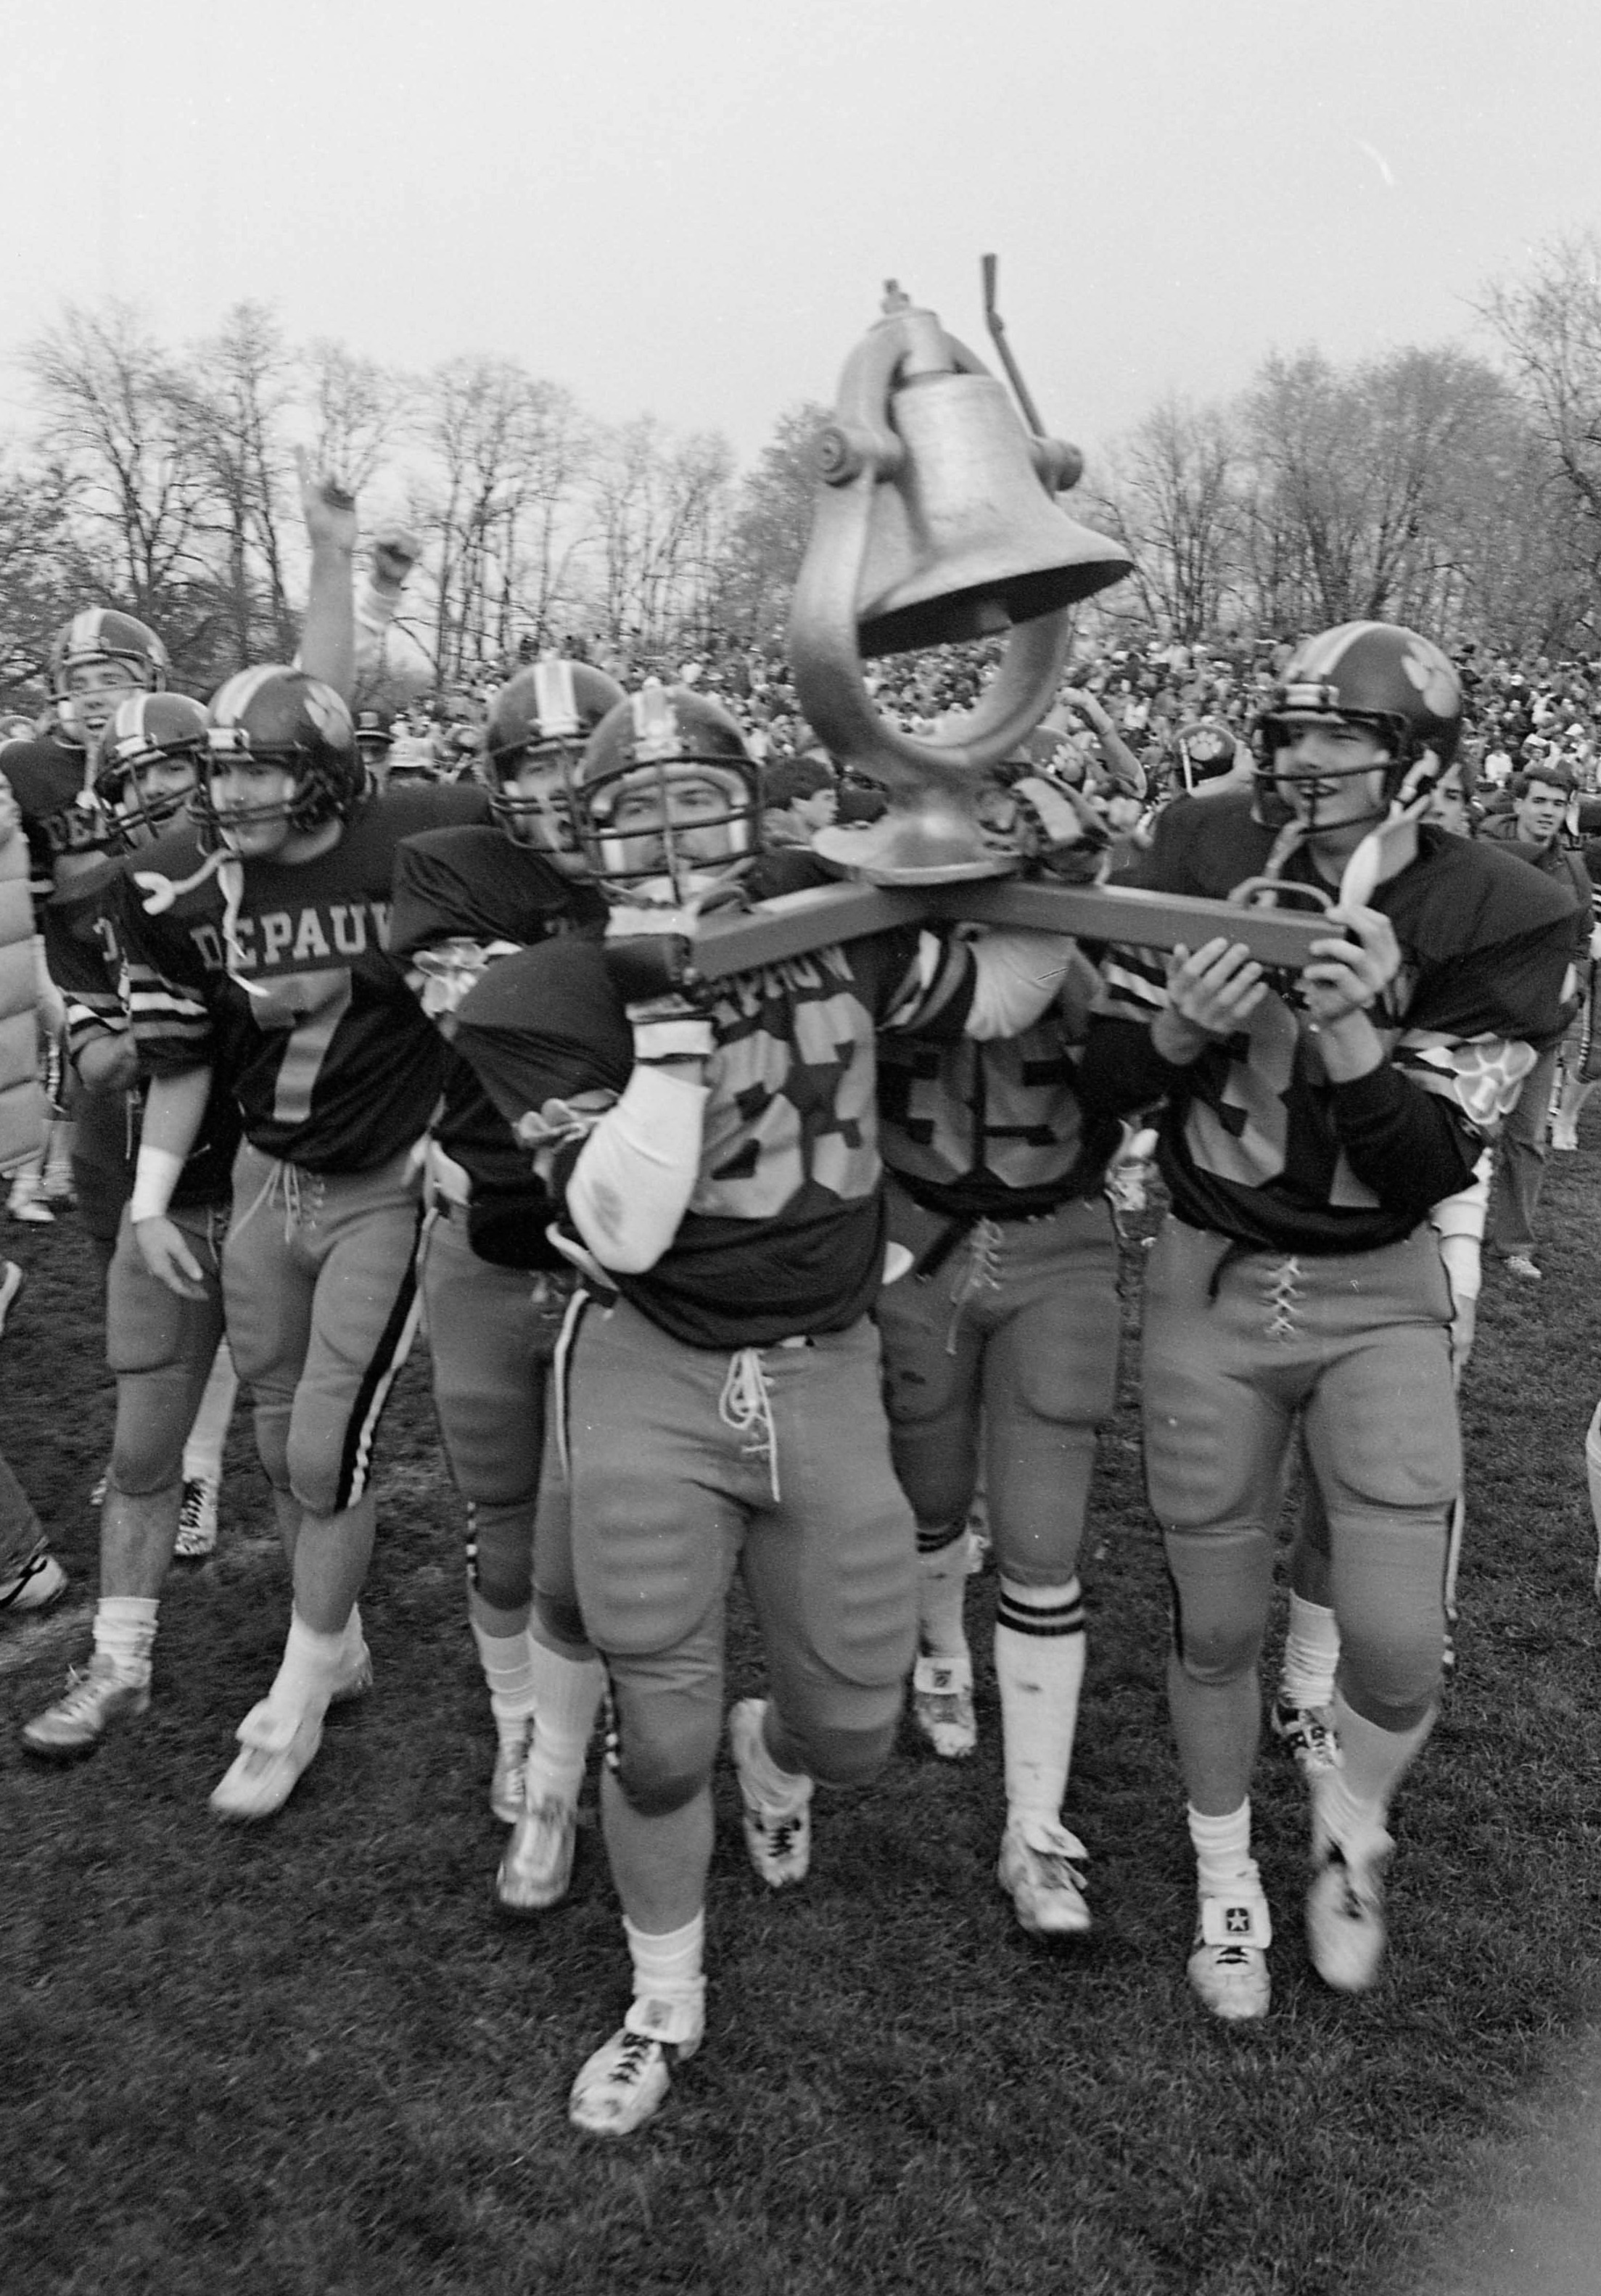 """As Classic Sports Matchups Go, """"DePauw/Wabash is Eternal ..."""